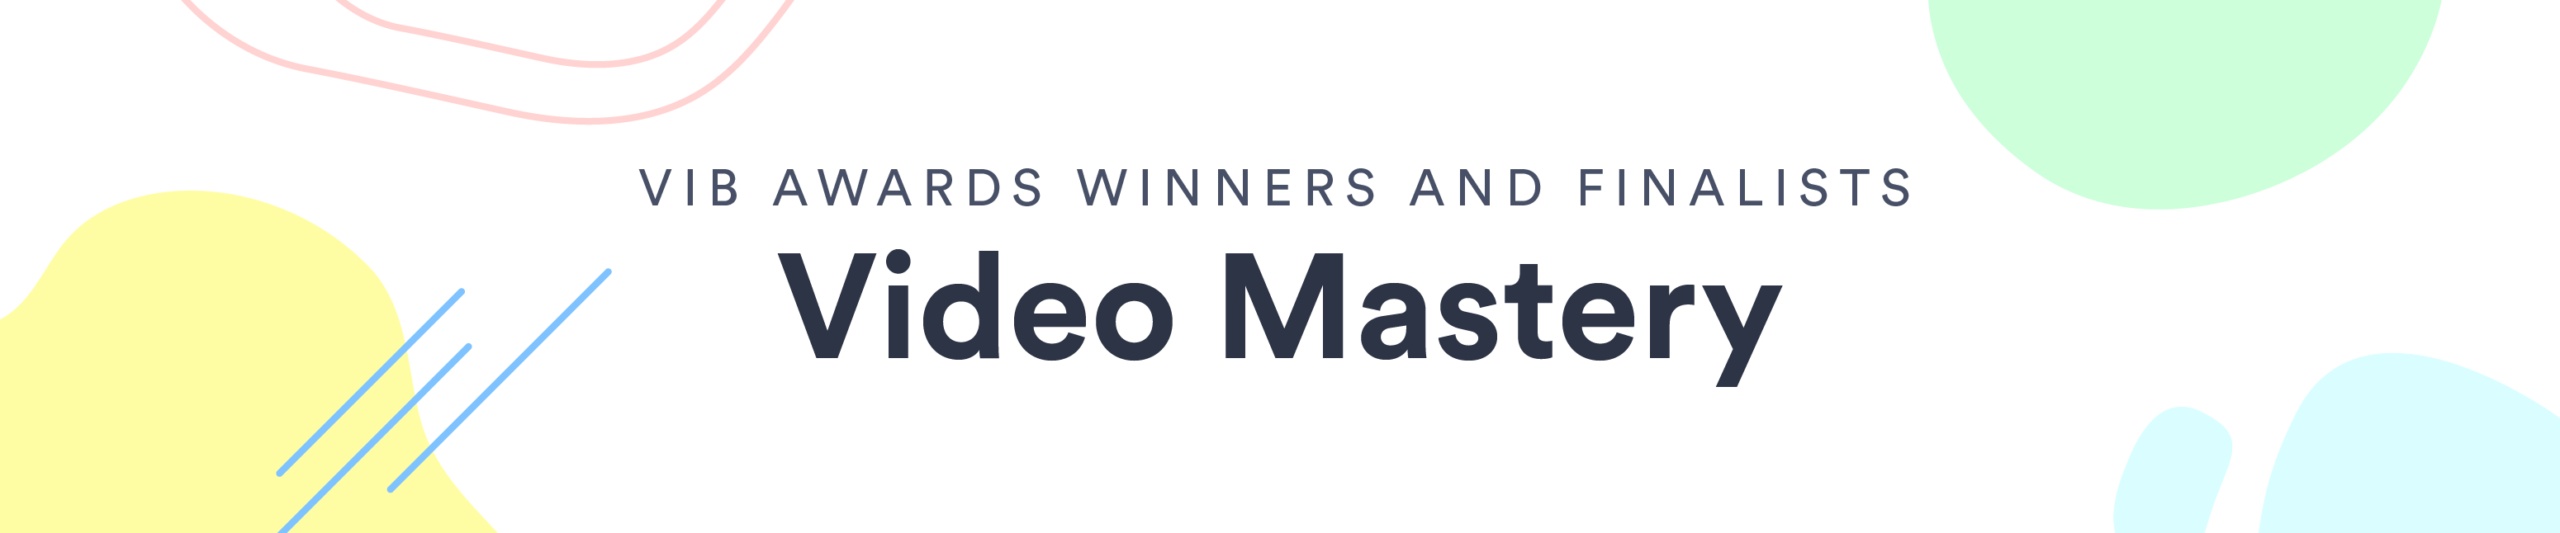 Video in Business Awards: Video Mastery Winners and Finalists